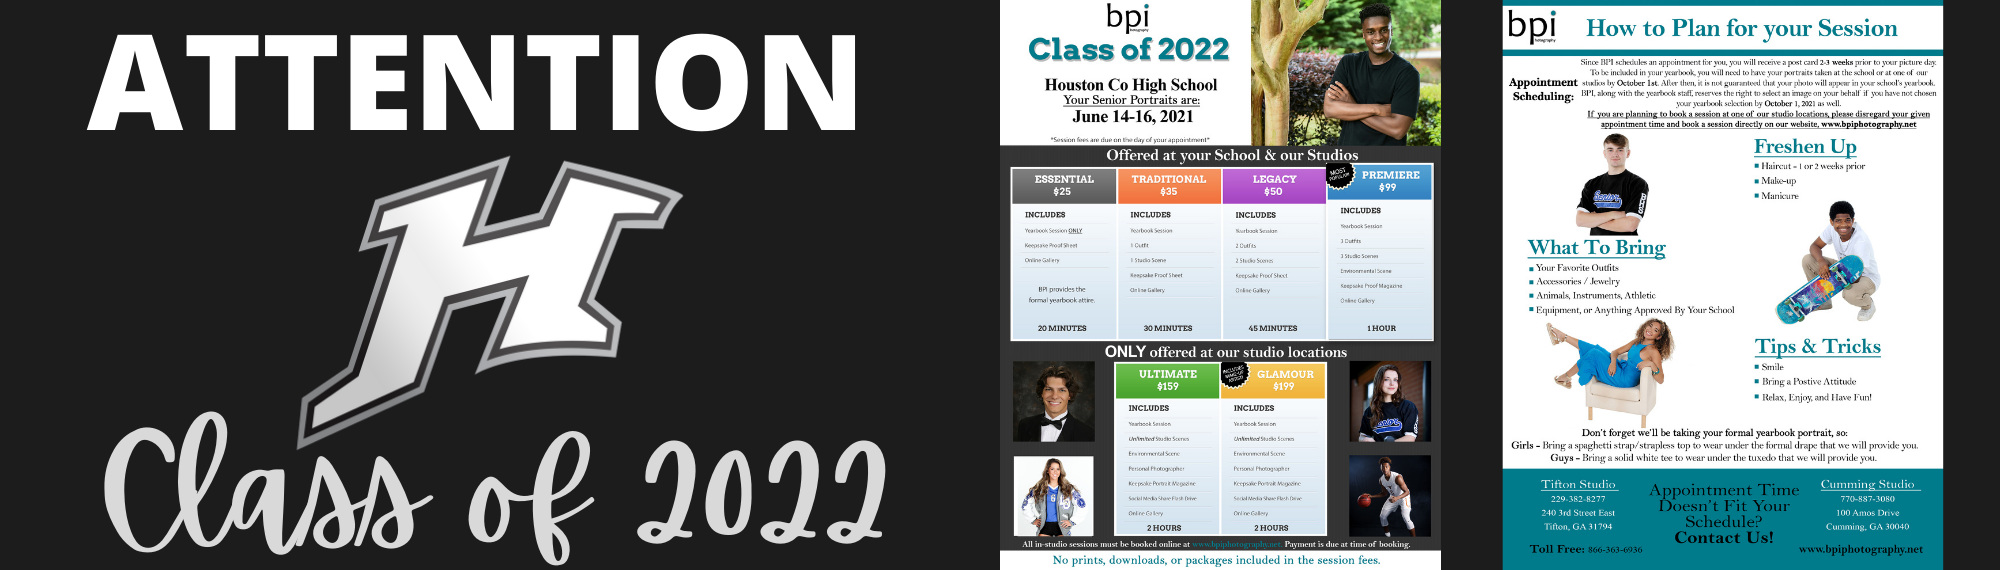 Class of 2022 Senior Pictures Info